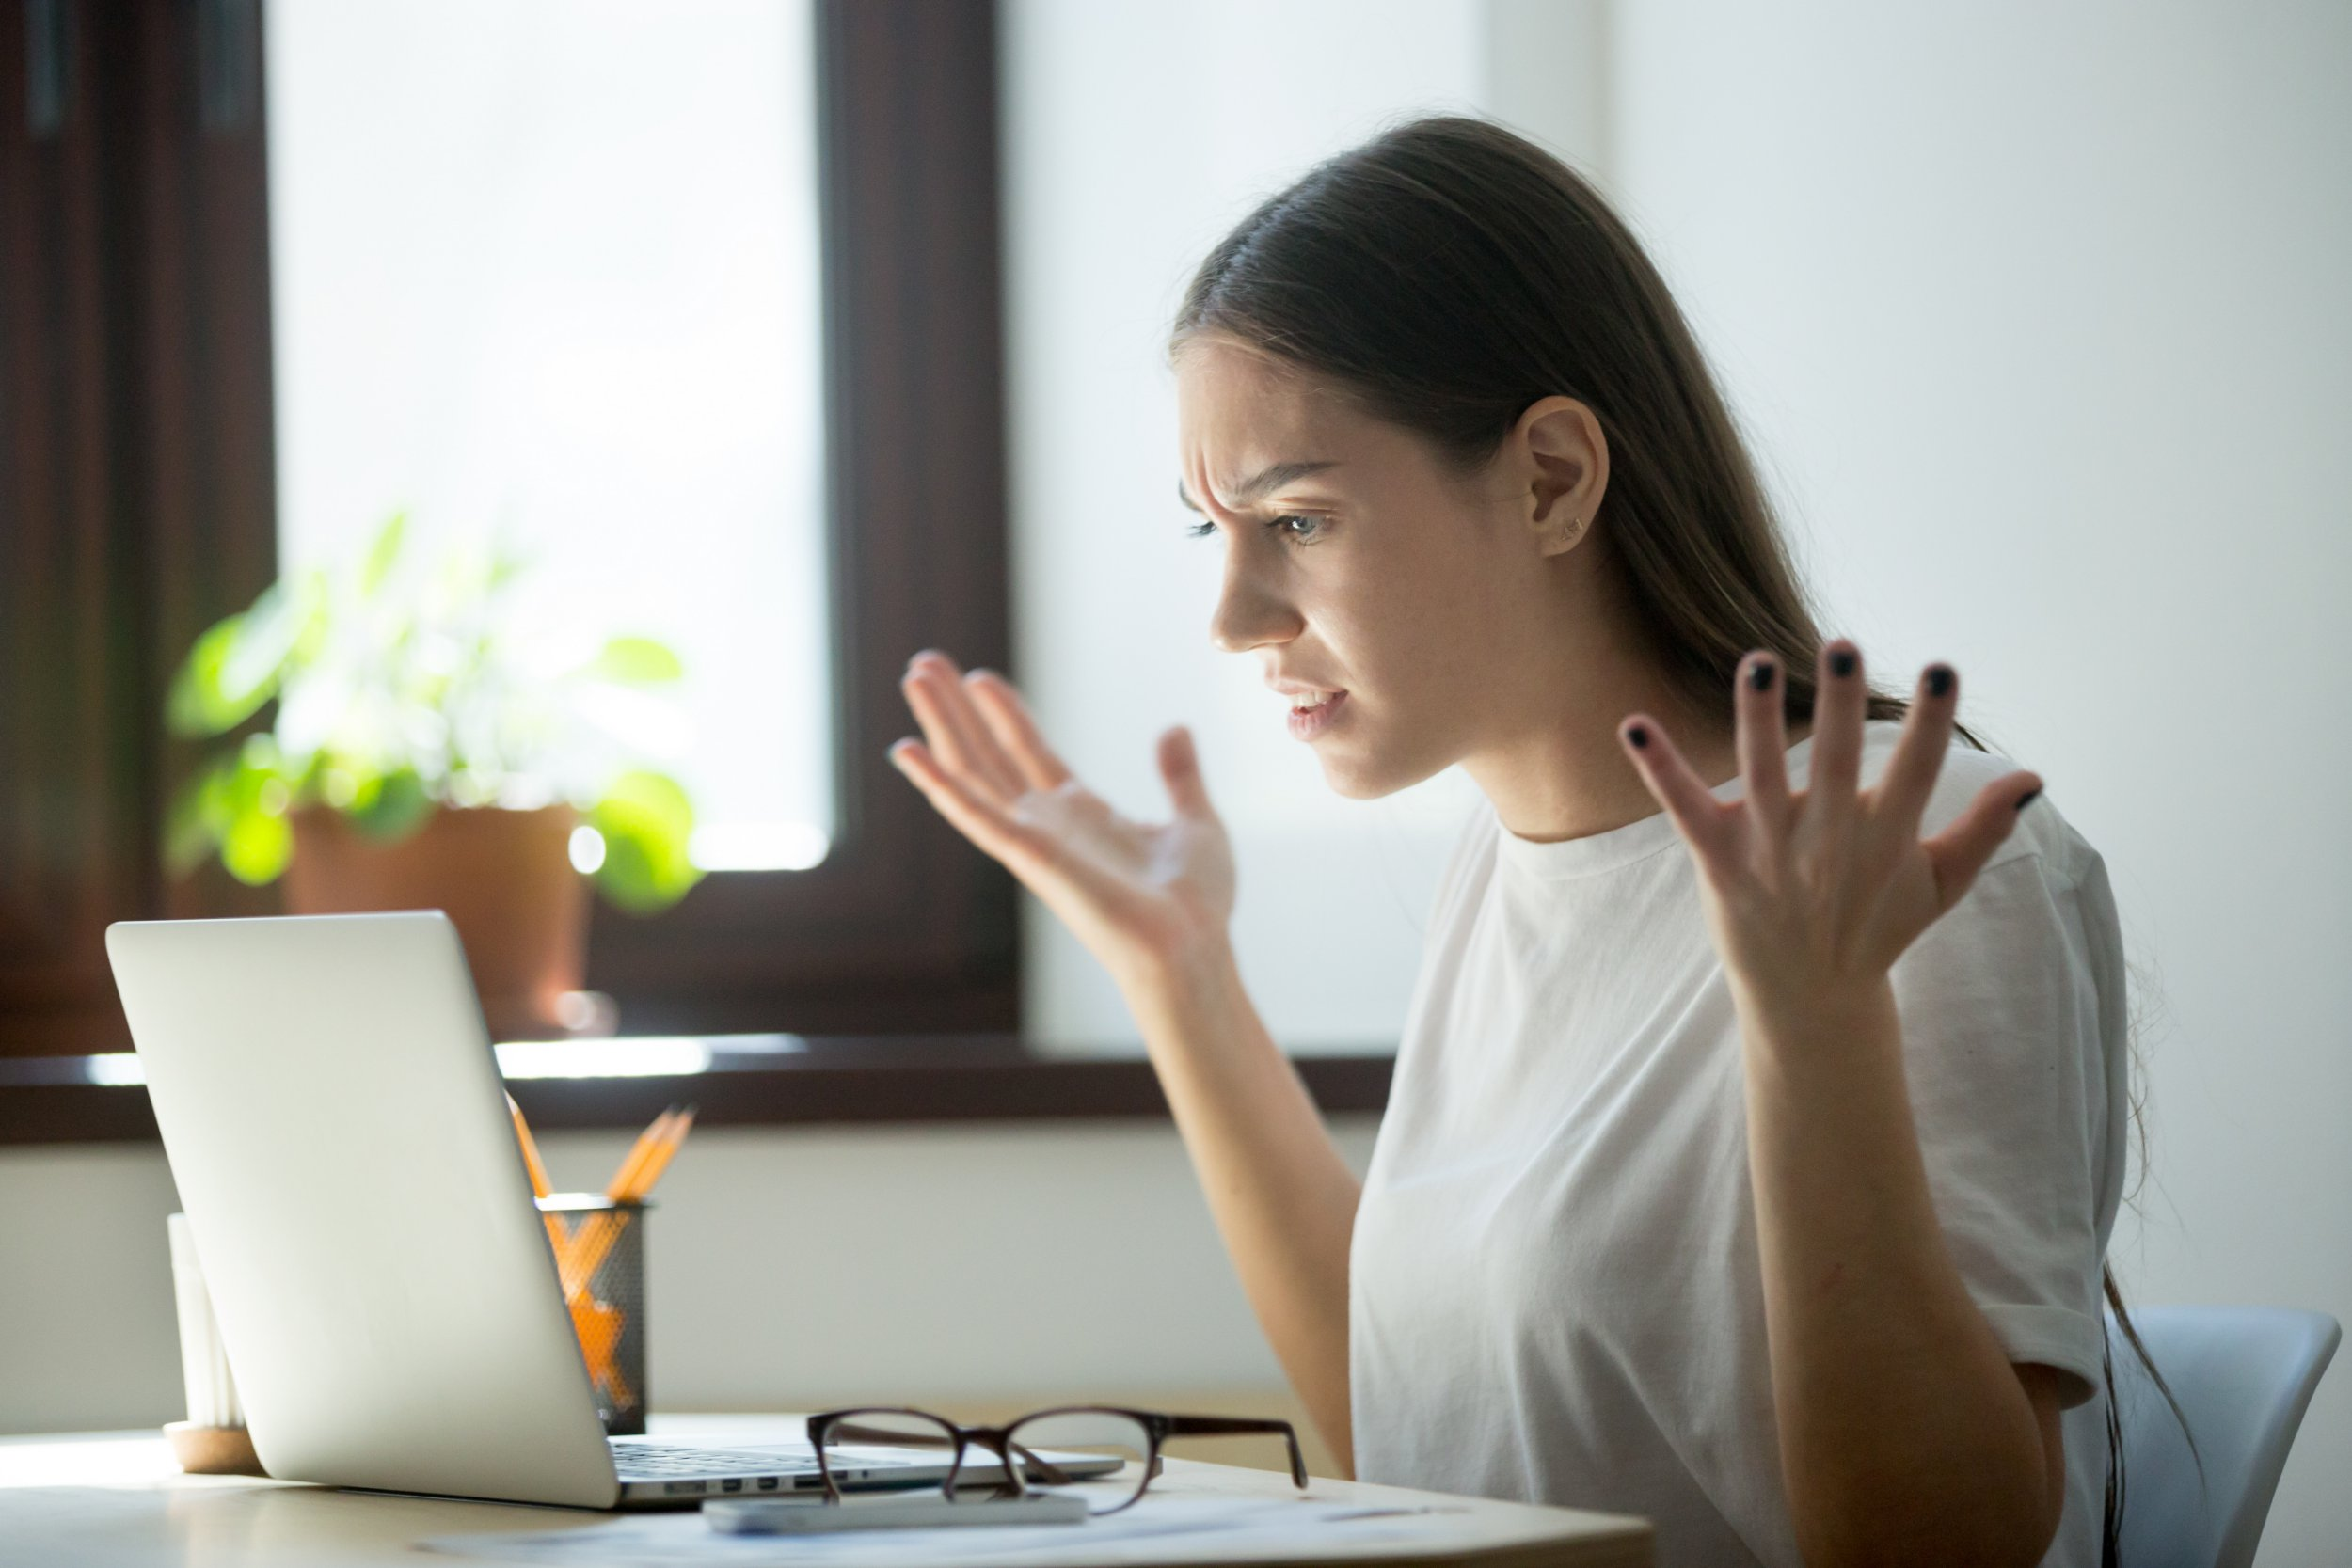 Millennial generation young adult woman looking in laptop computer, fling arms up. She just found mistake in last assignment, error in contract, disagreement in email or dissatisfied buyer message.; Shutterstock ID 725378587; Purchase Order: -